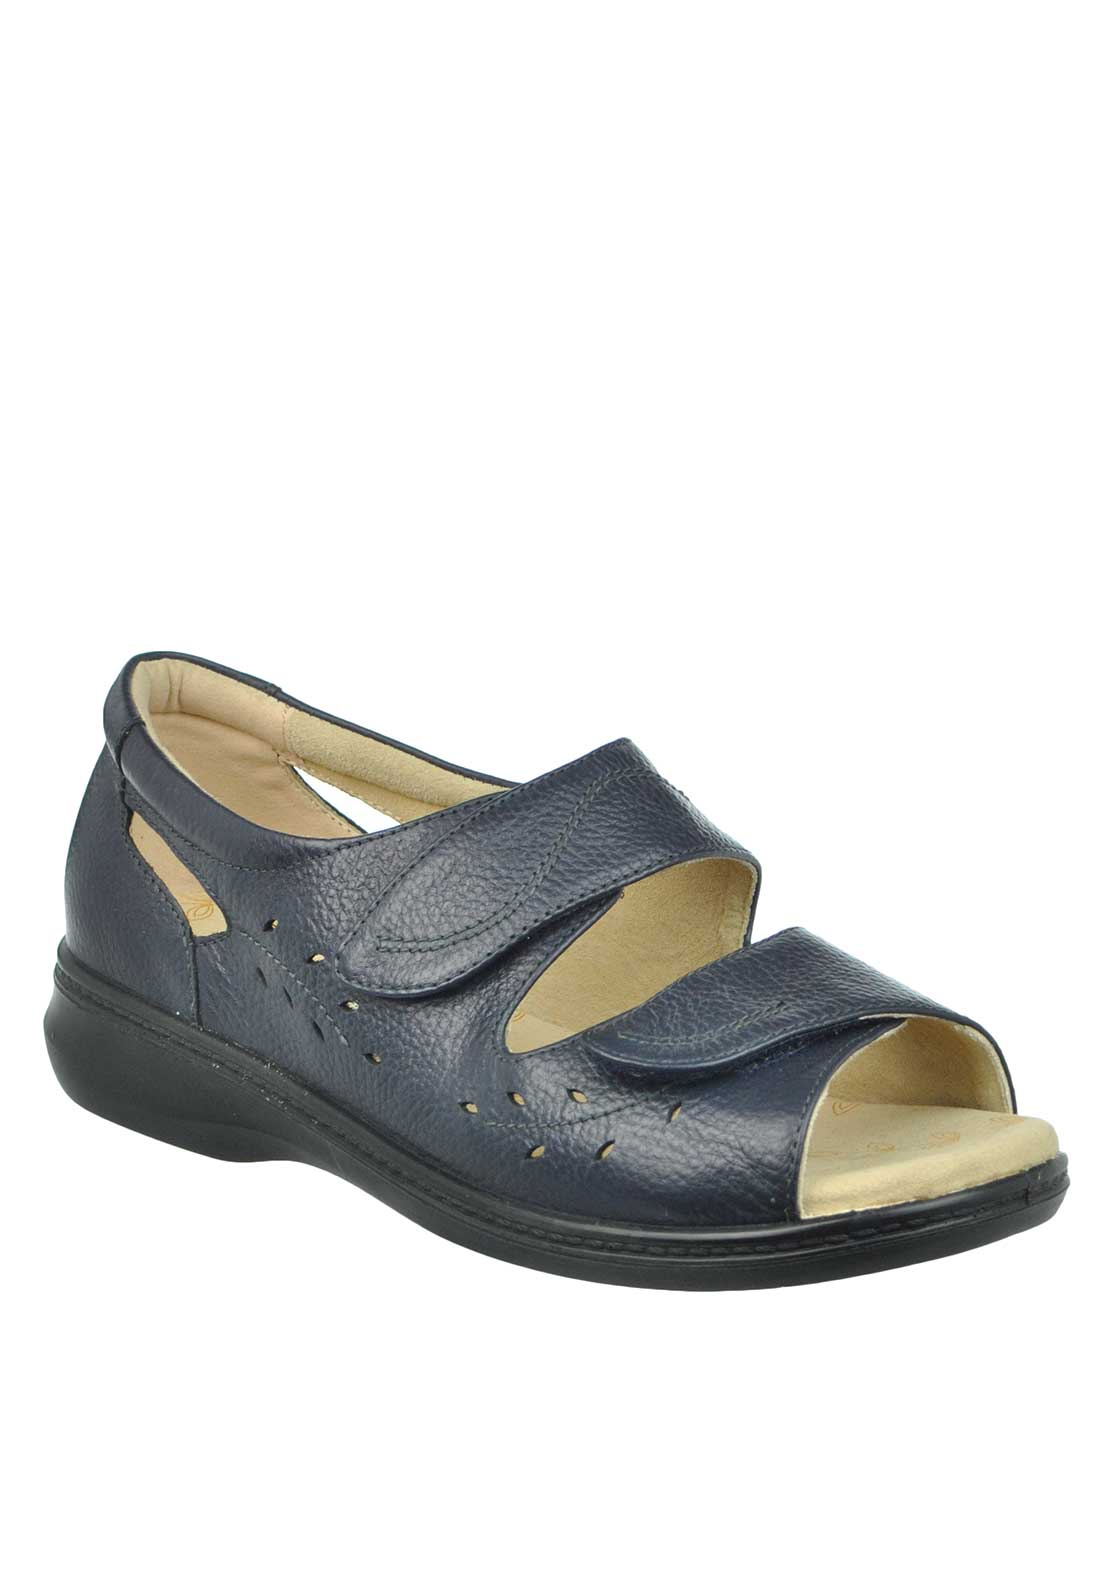 Padders + Wave Velcro Strap Sandals, Navy